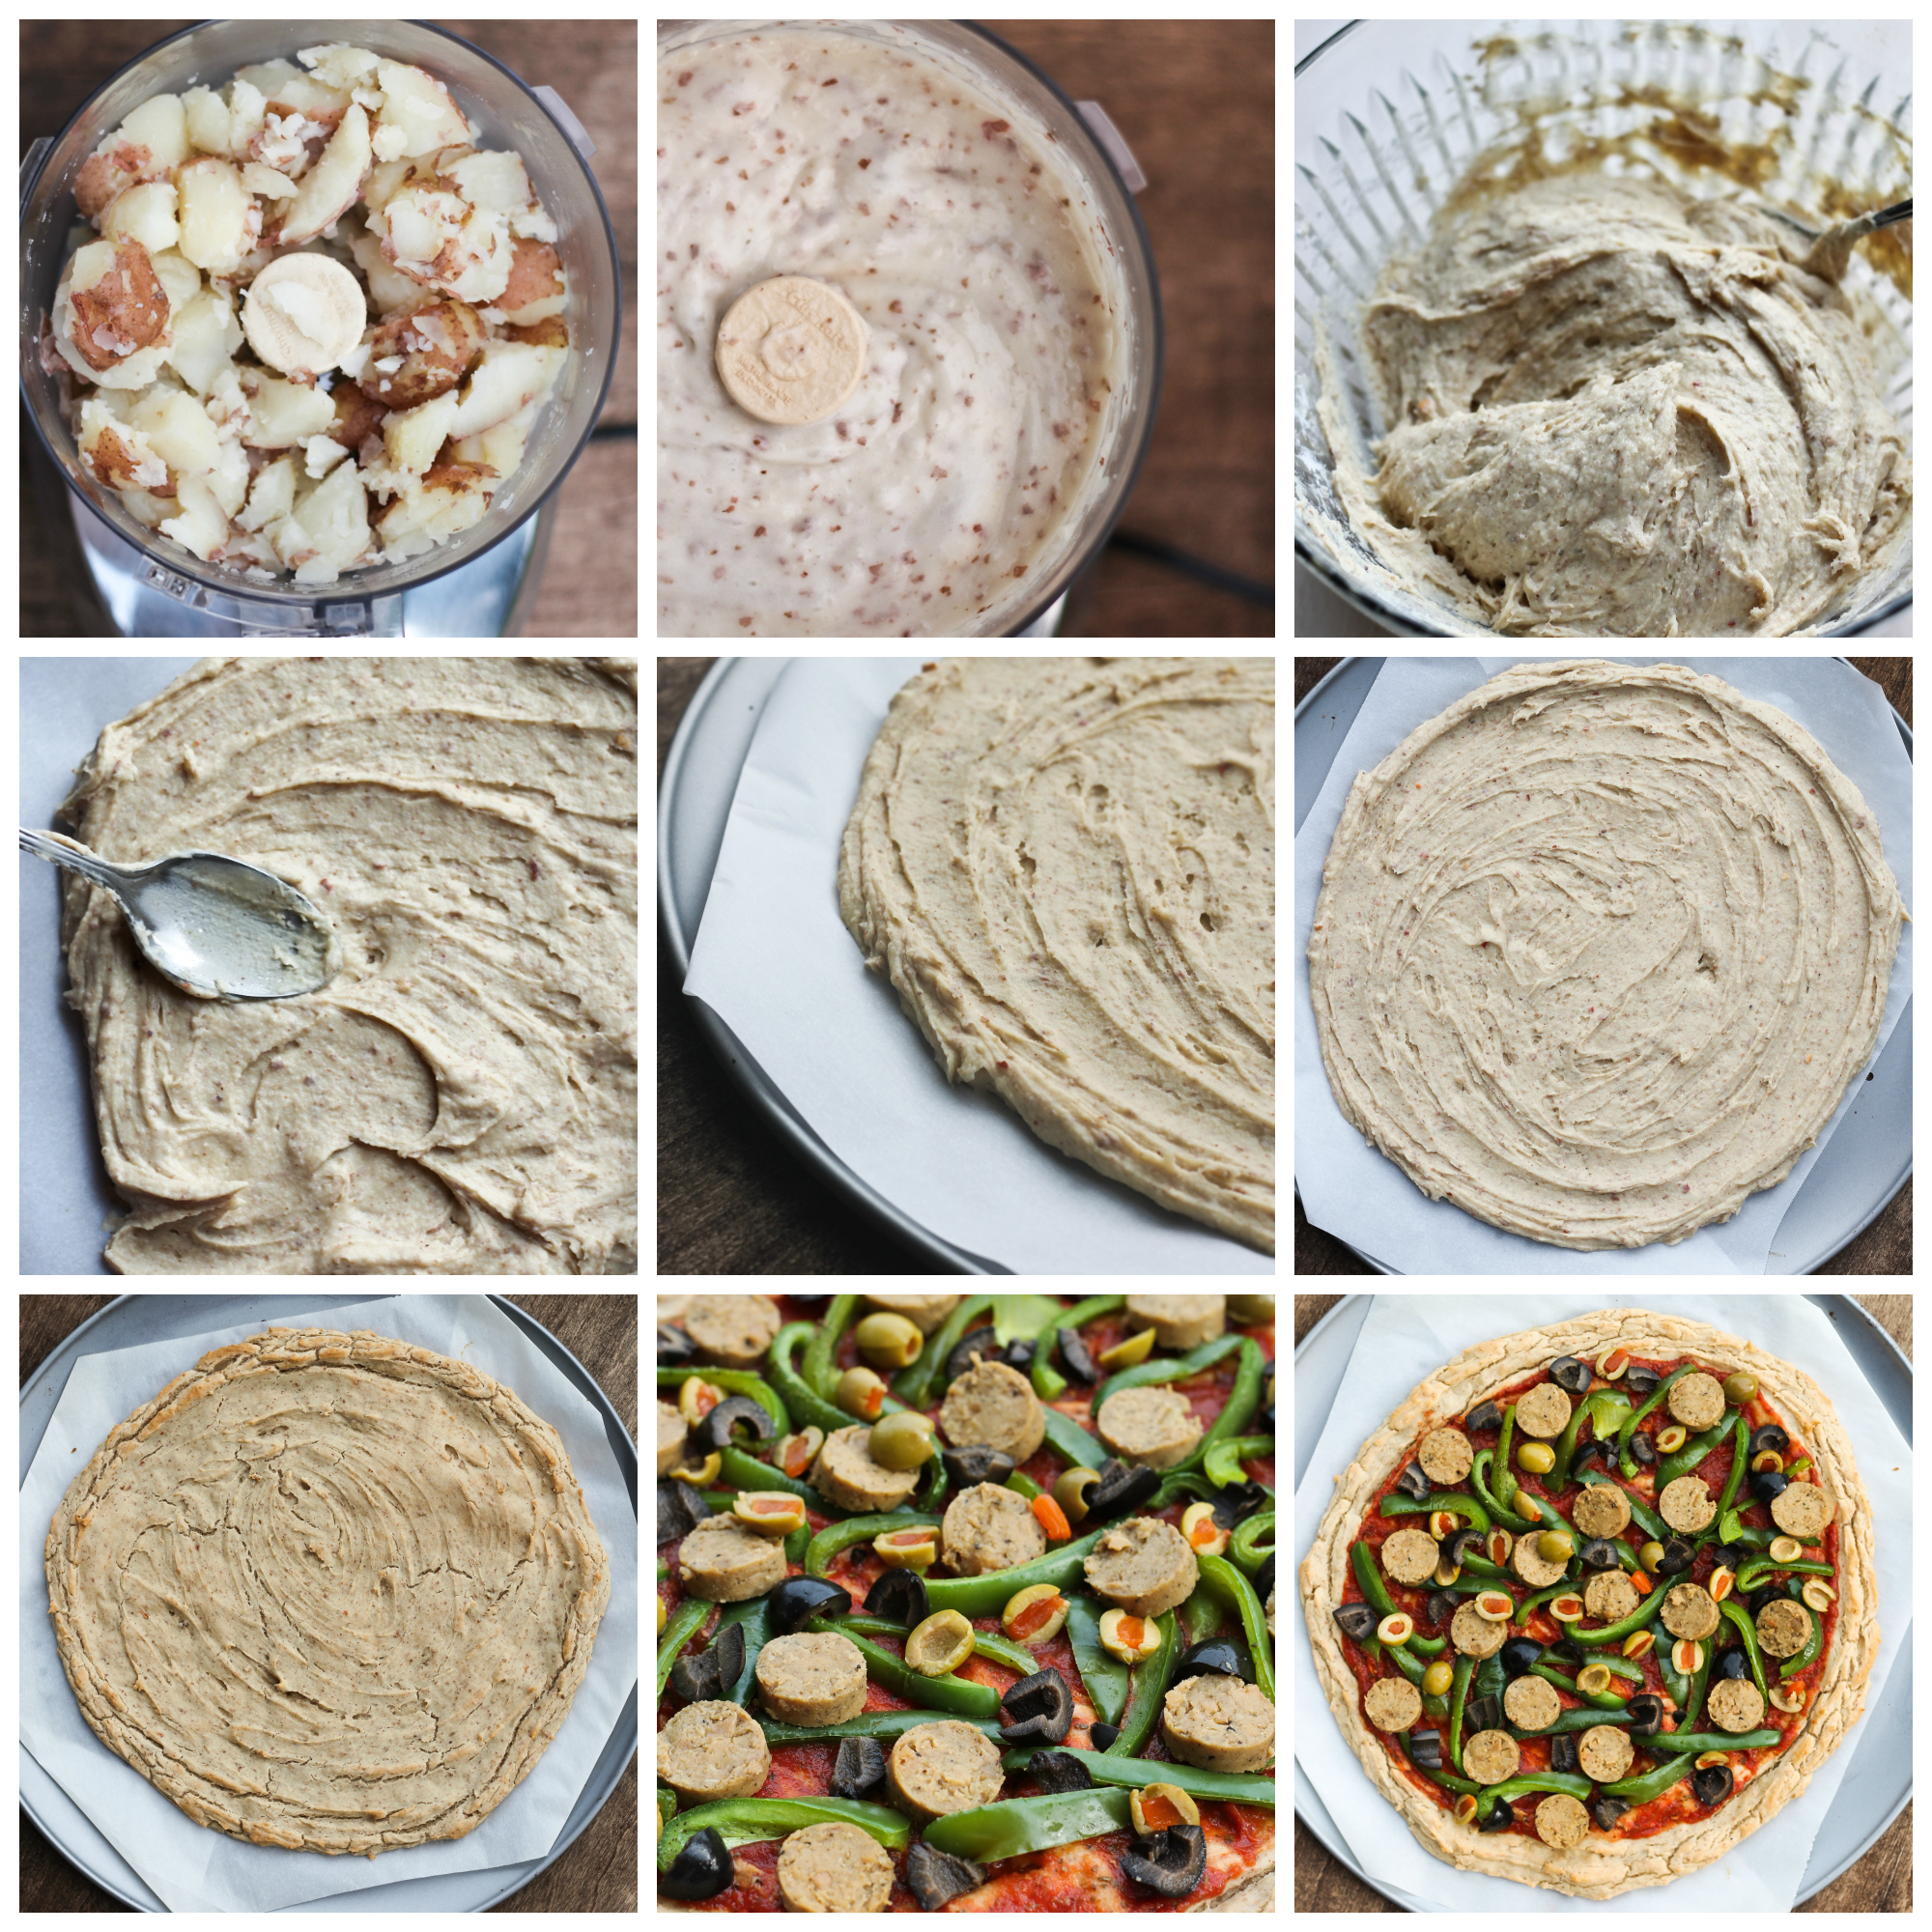 sequence of images showing how to make potato pizza crust